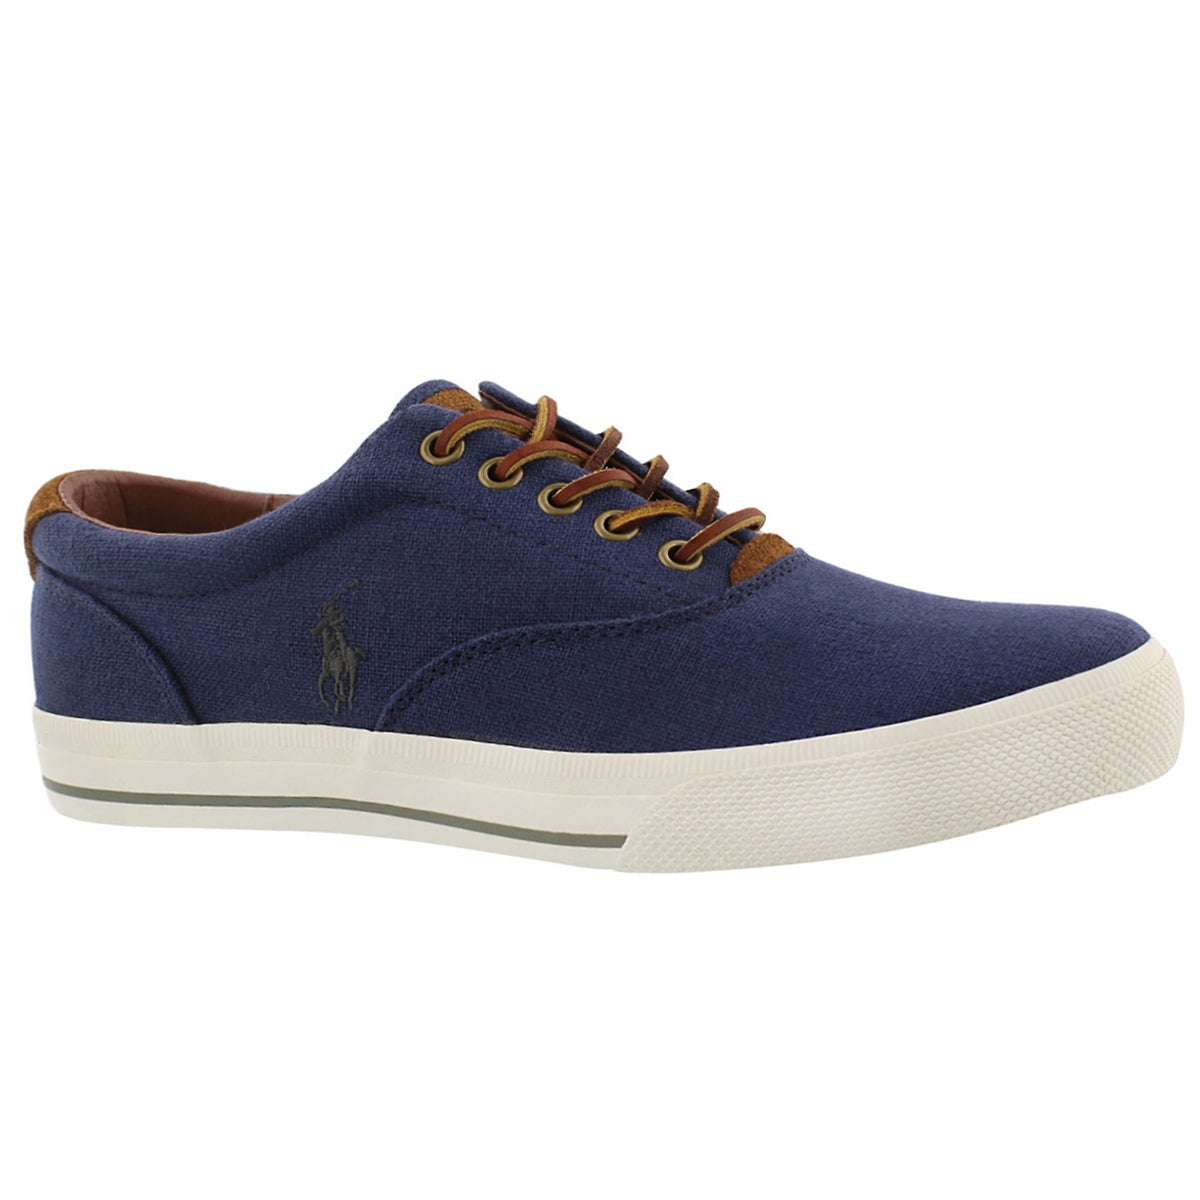 Men's VAUGHN navy linen fashion sneakers